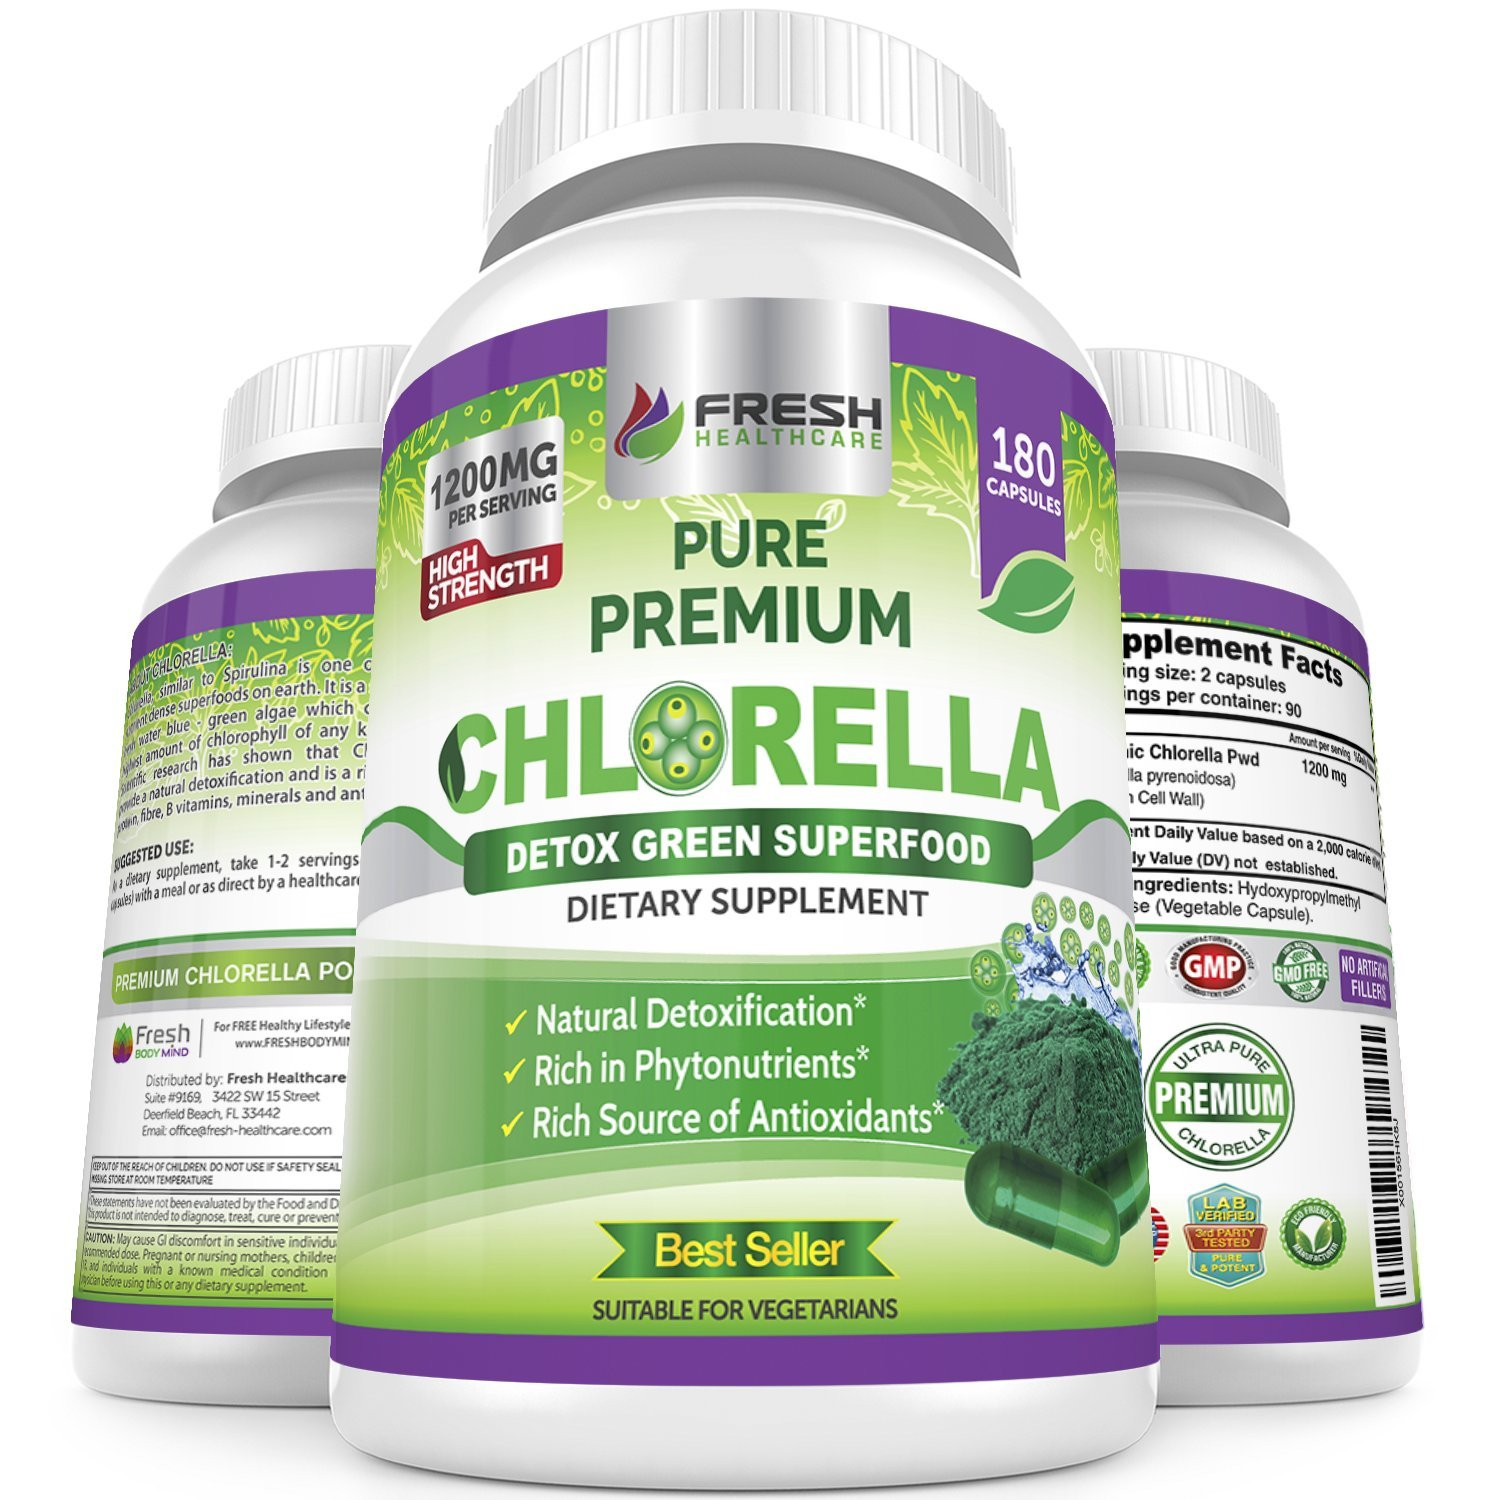 Organic Chlorella Capsules 100% Vegetarian – 180 Pure Vegan Powder Capsules – No.1 Source of Chlorophyll & CGF-1200mg Natural Detox Superfood - Rich in B Vitamins, Minerals & Protein-Cracked Cell Wall